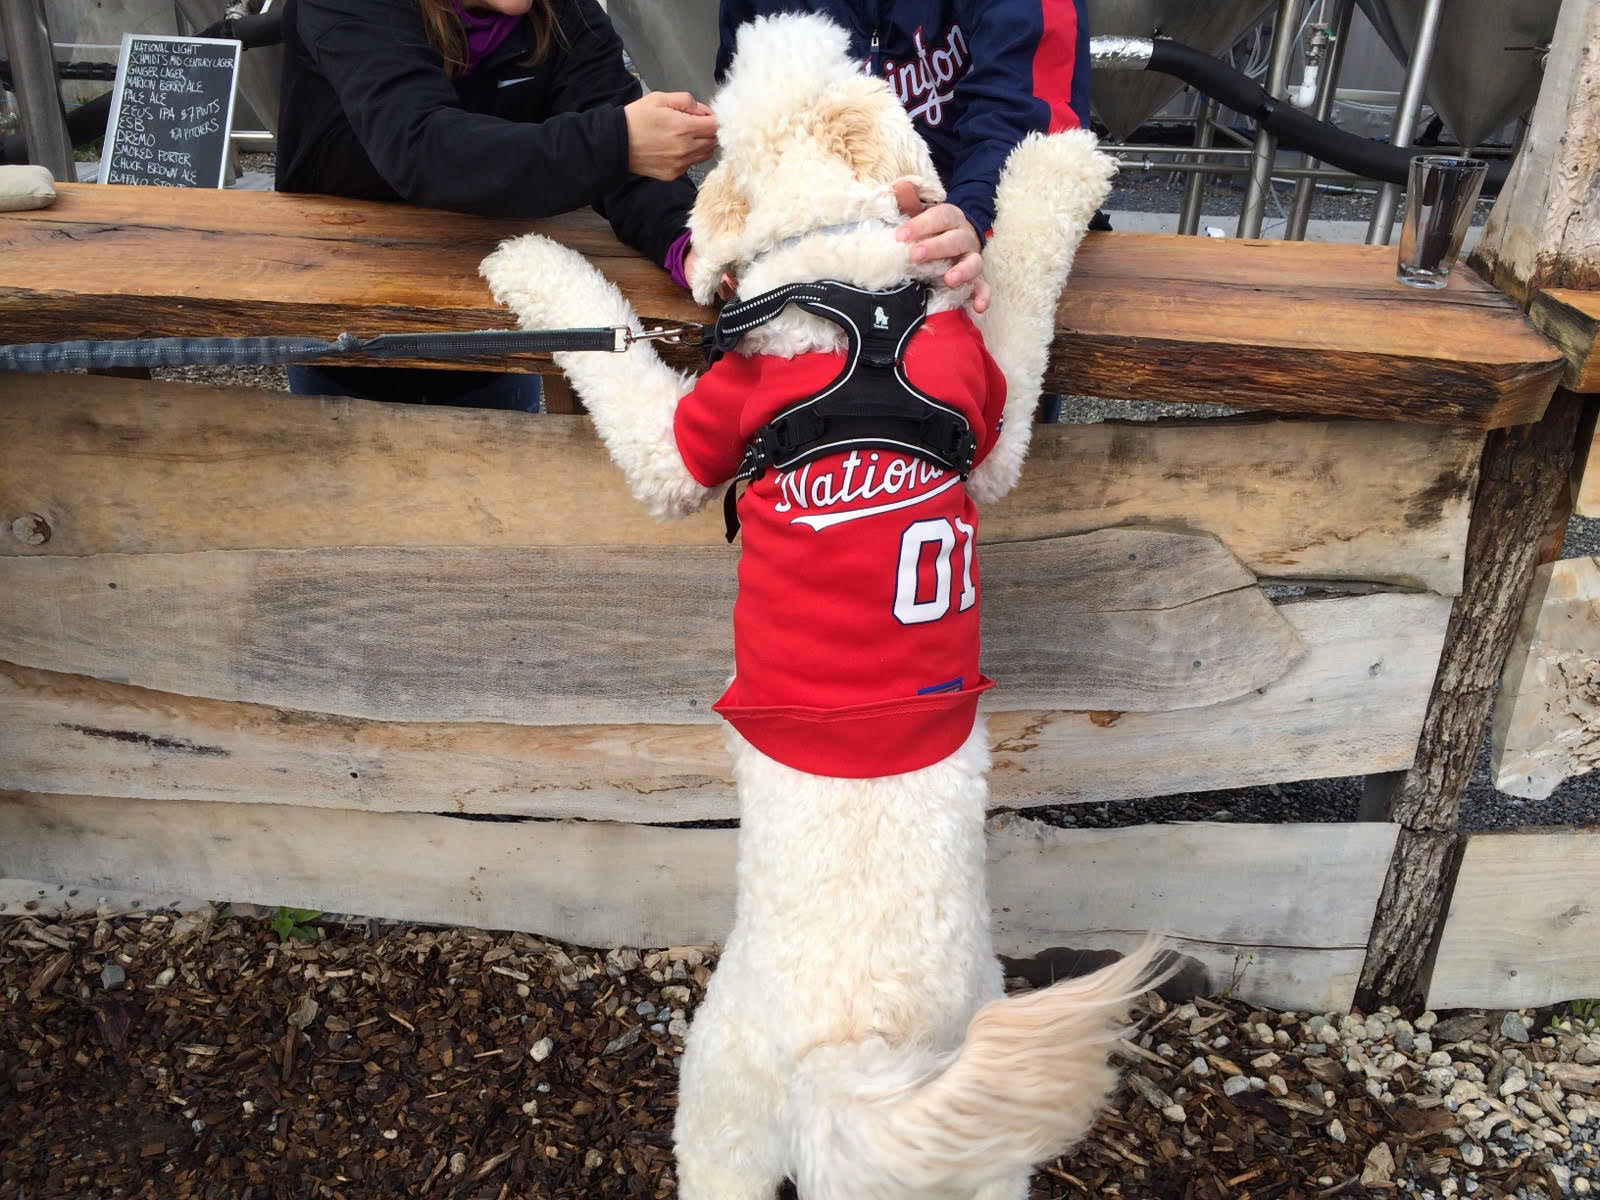 """""""We've always been dog friendly, we figured it would be nice to have an off-leash dog area. It's about half an acre, we feel it's the biggest dog park in the city,"""" said Andrew Stewart, co-owner of Bardo Brewery.   (Andrew Stewart)"""